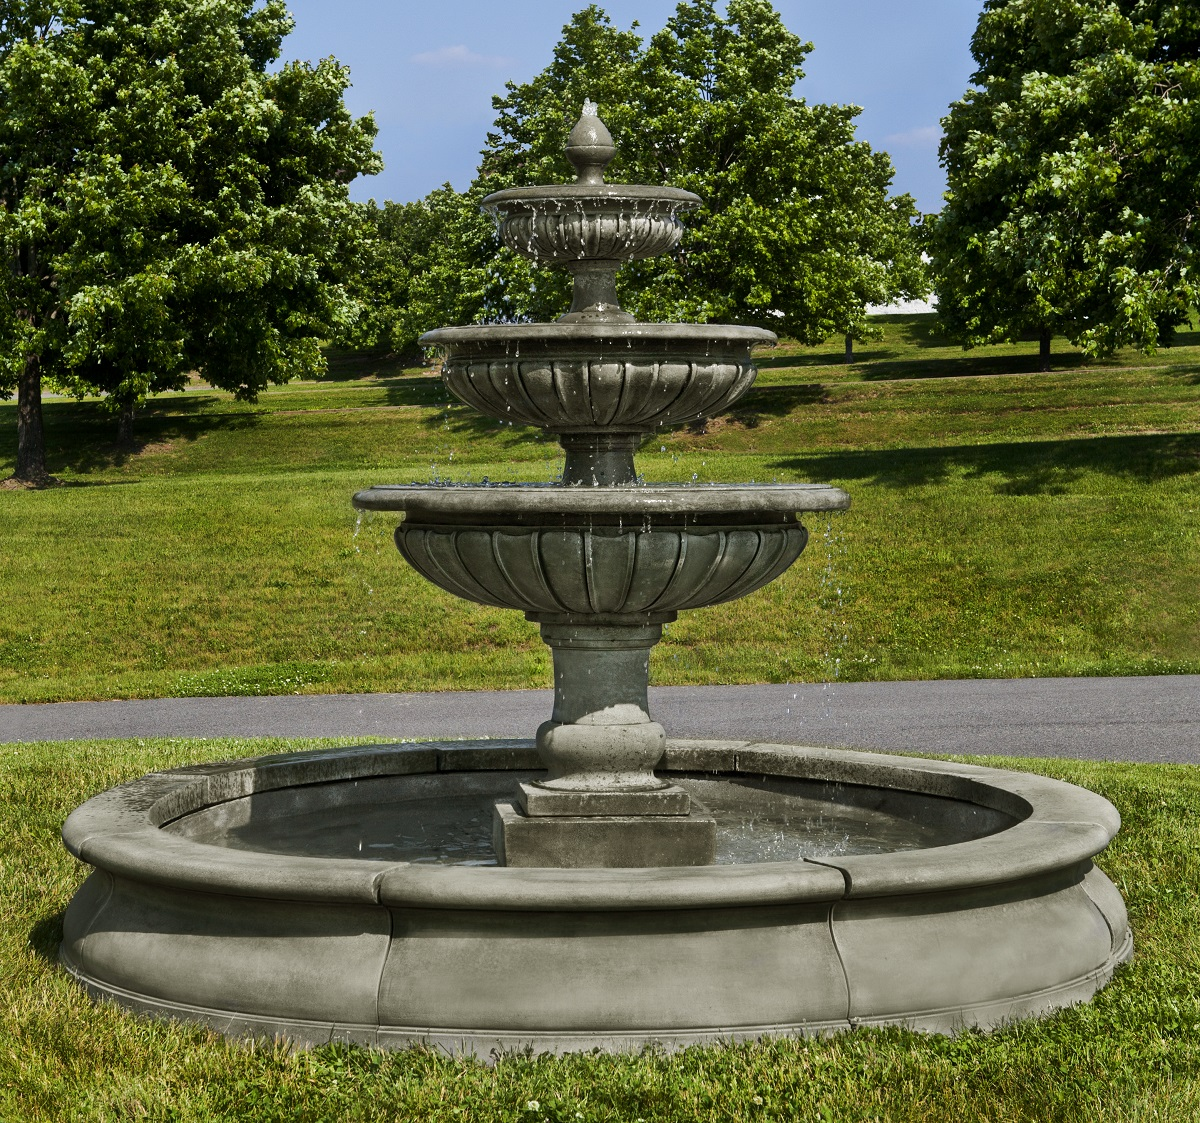 Condotti fountain large round bowl recirculating spout Outdoor water fountains